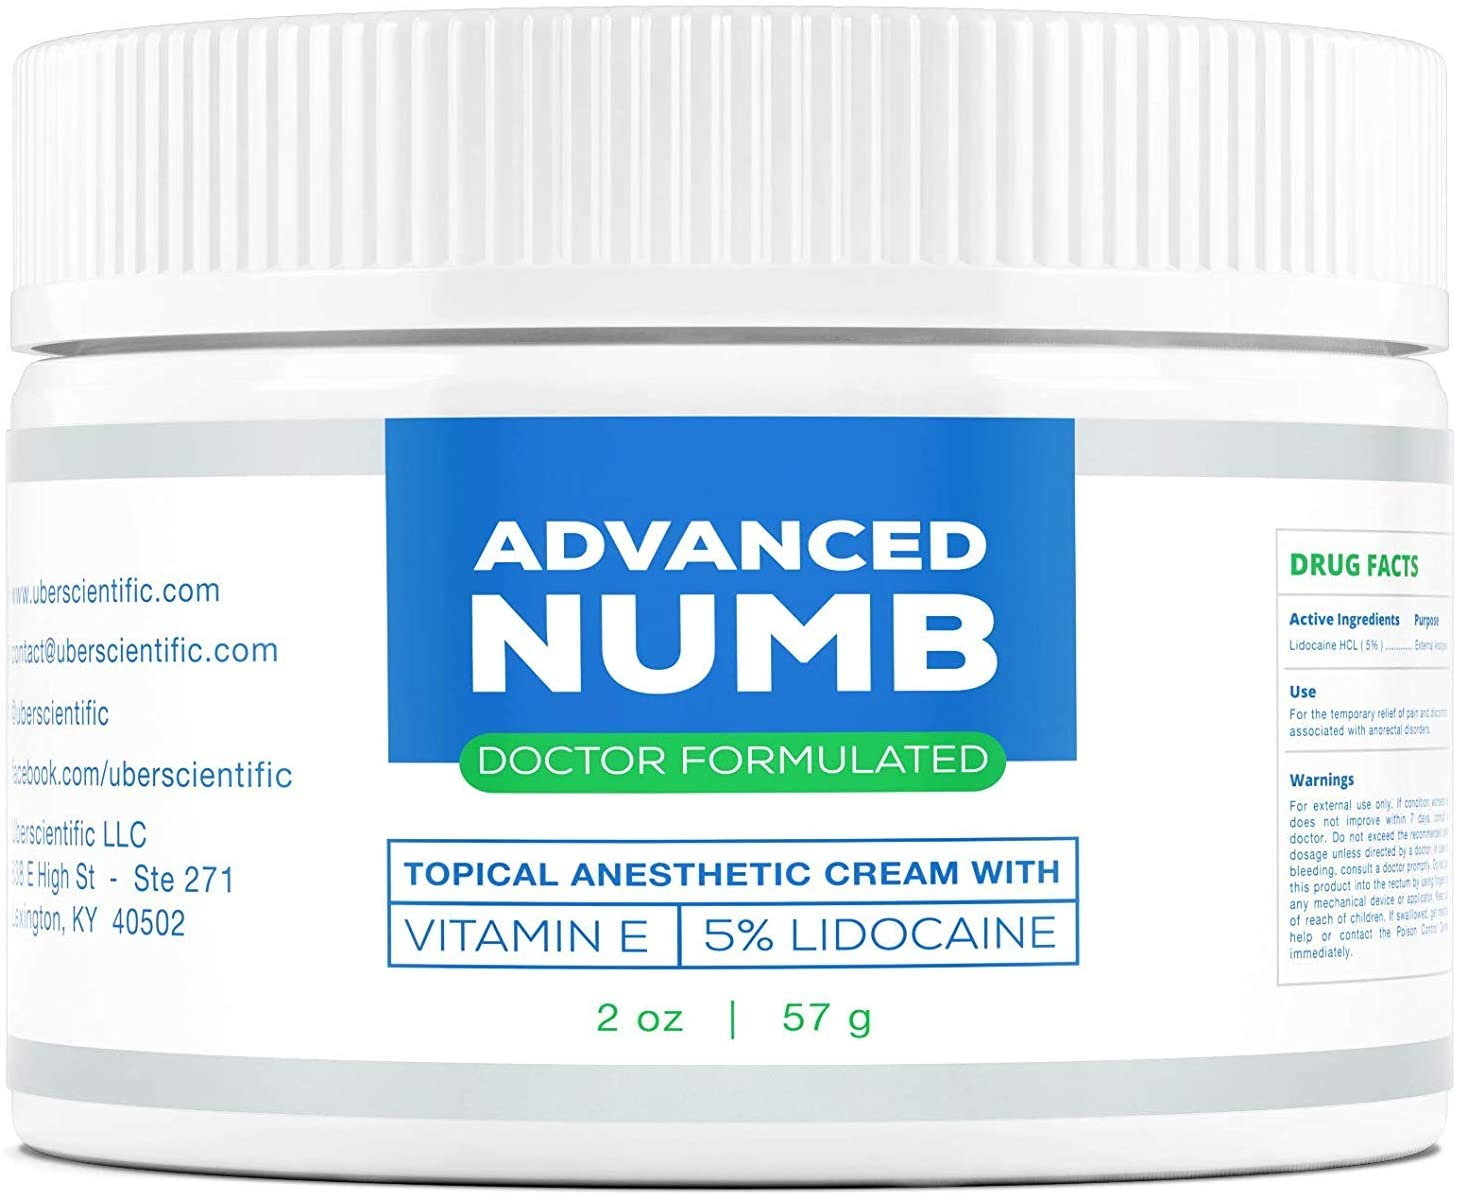 Advanced Numb 5% Lidocaine Pain Relief Cream